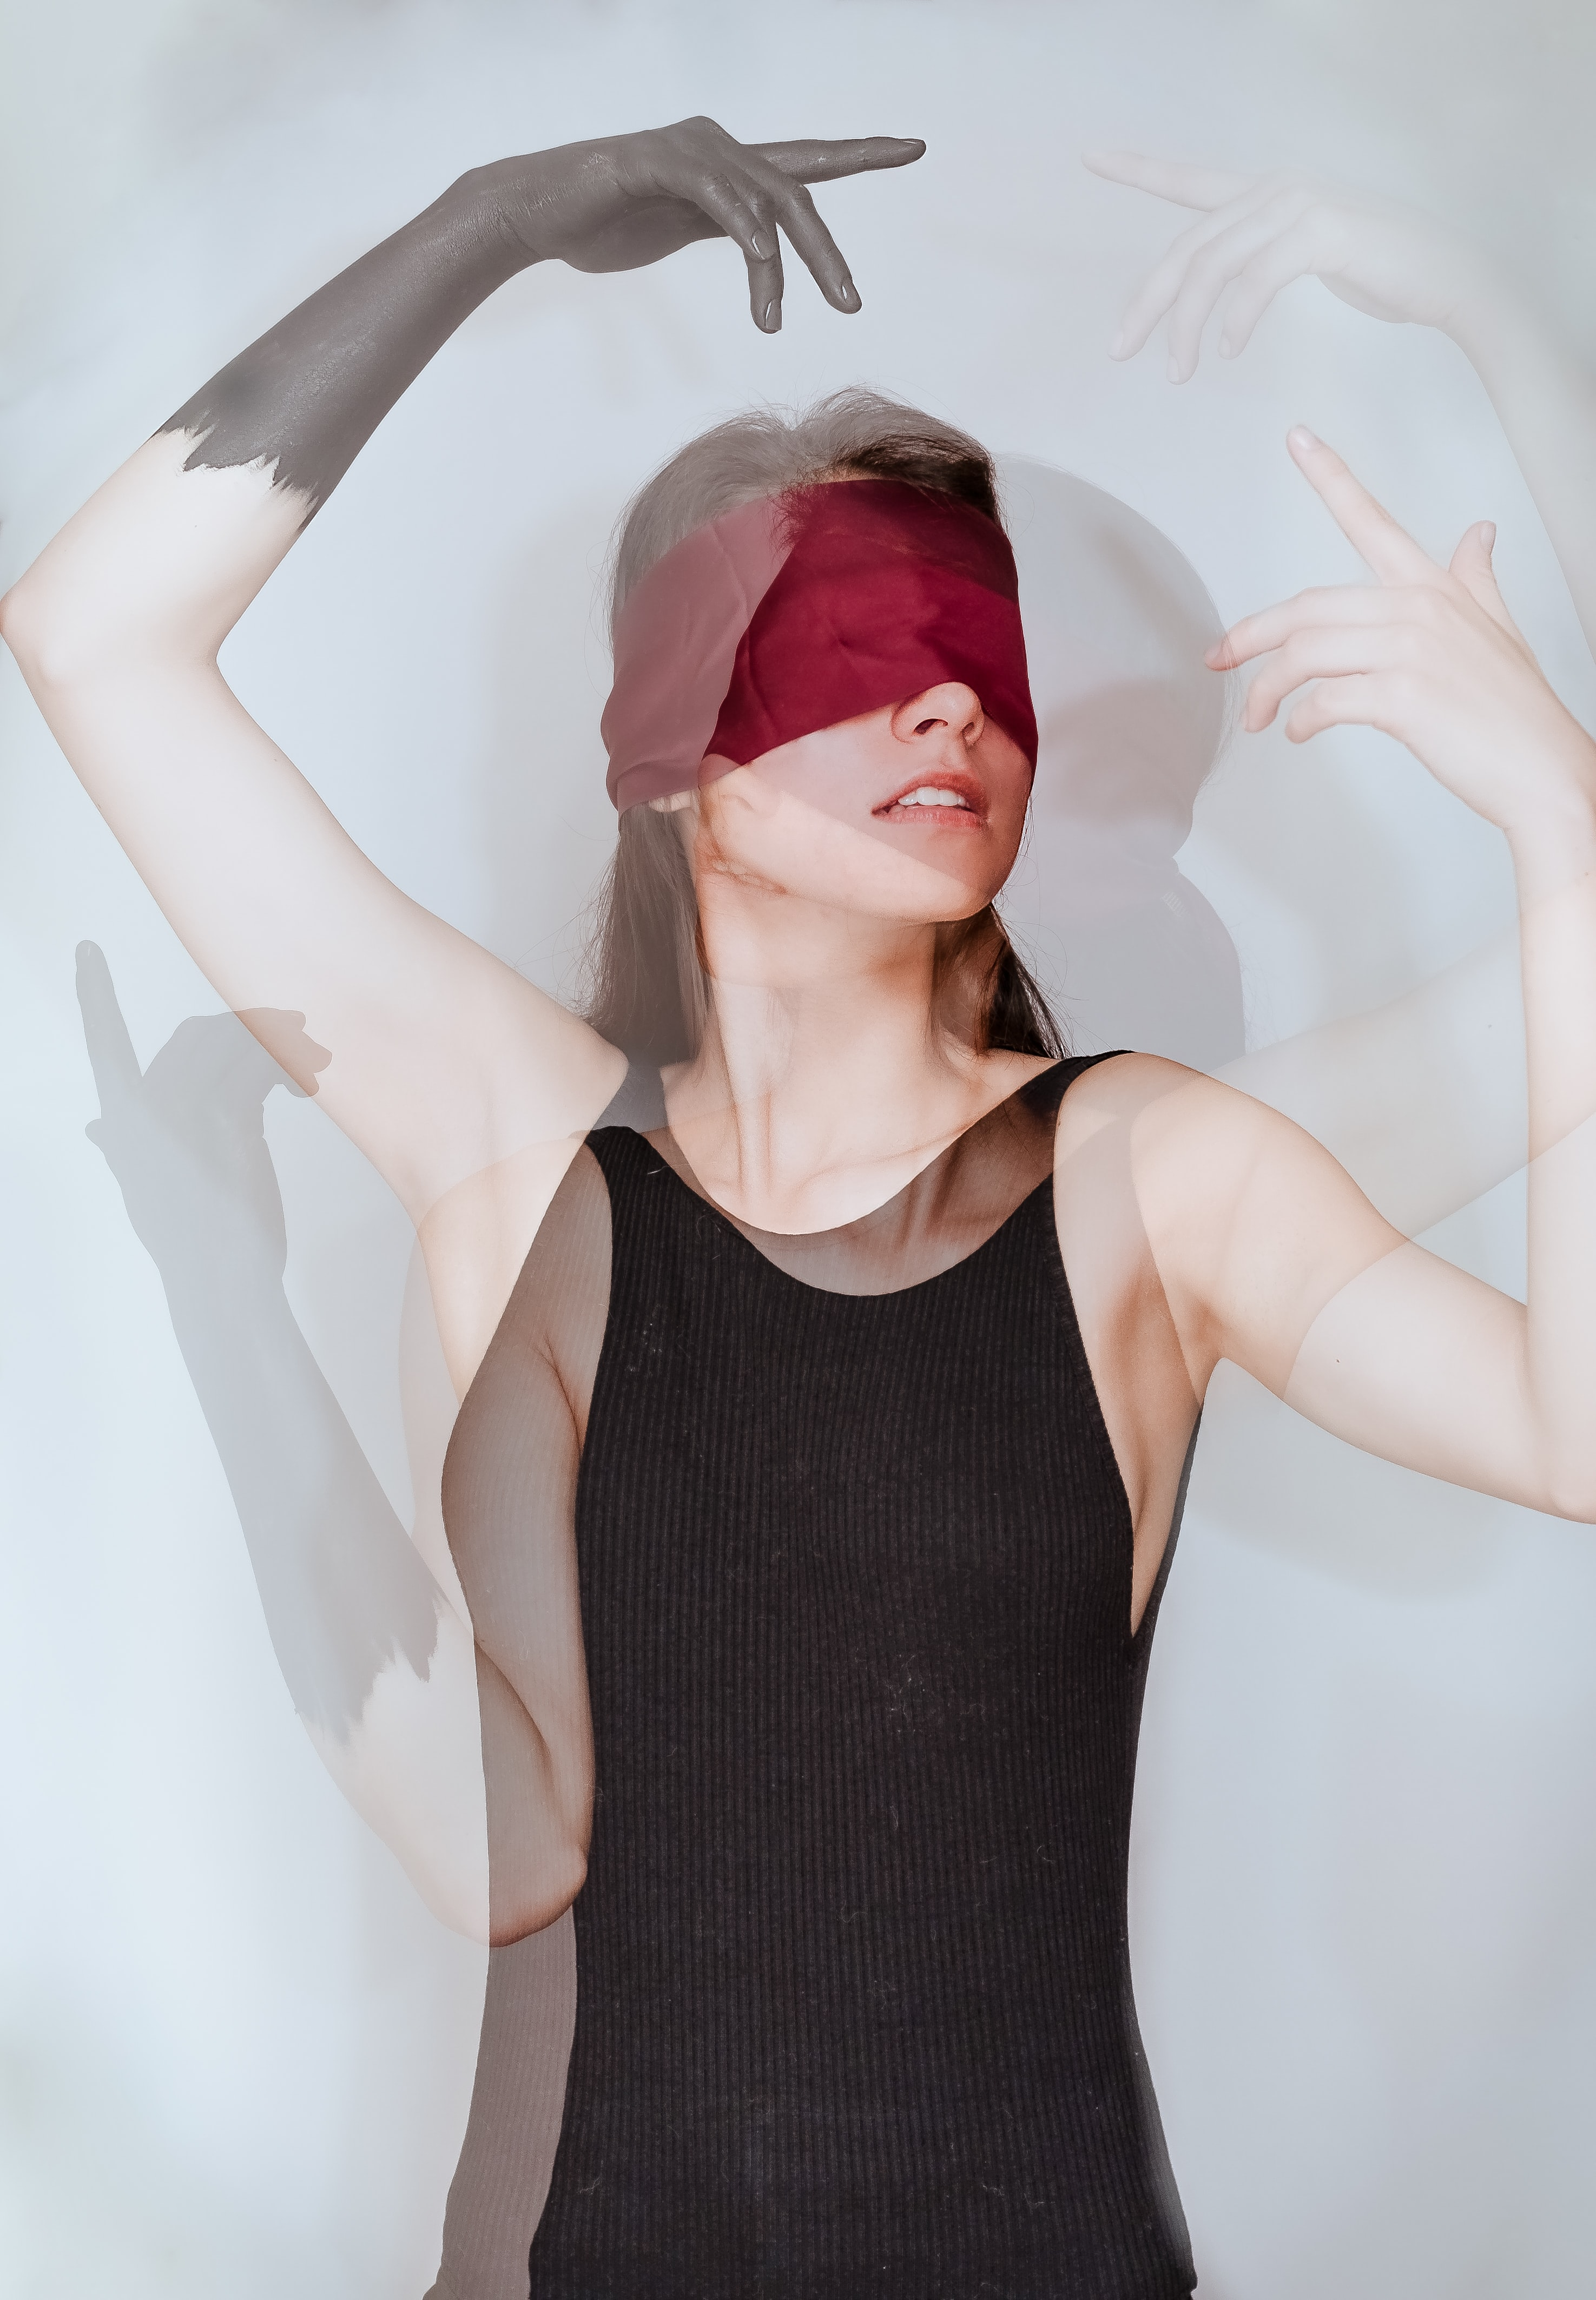 woman with red blindfold wearing black sleeveless top standing beside white wall